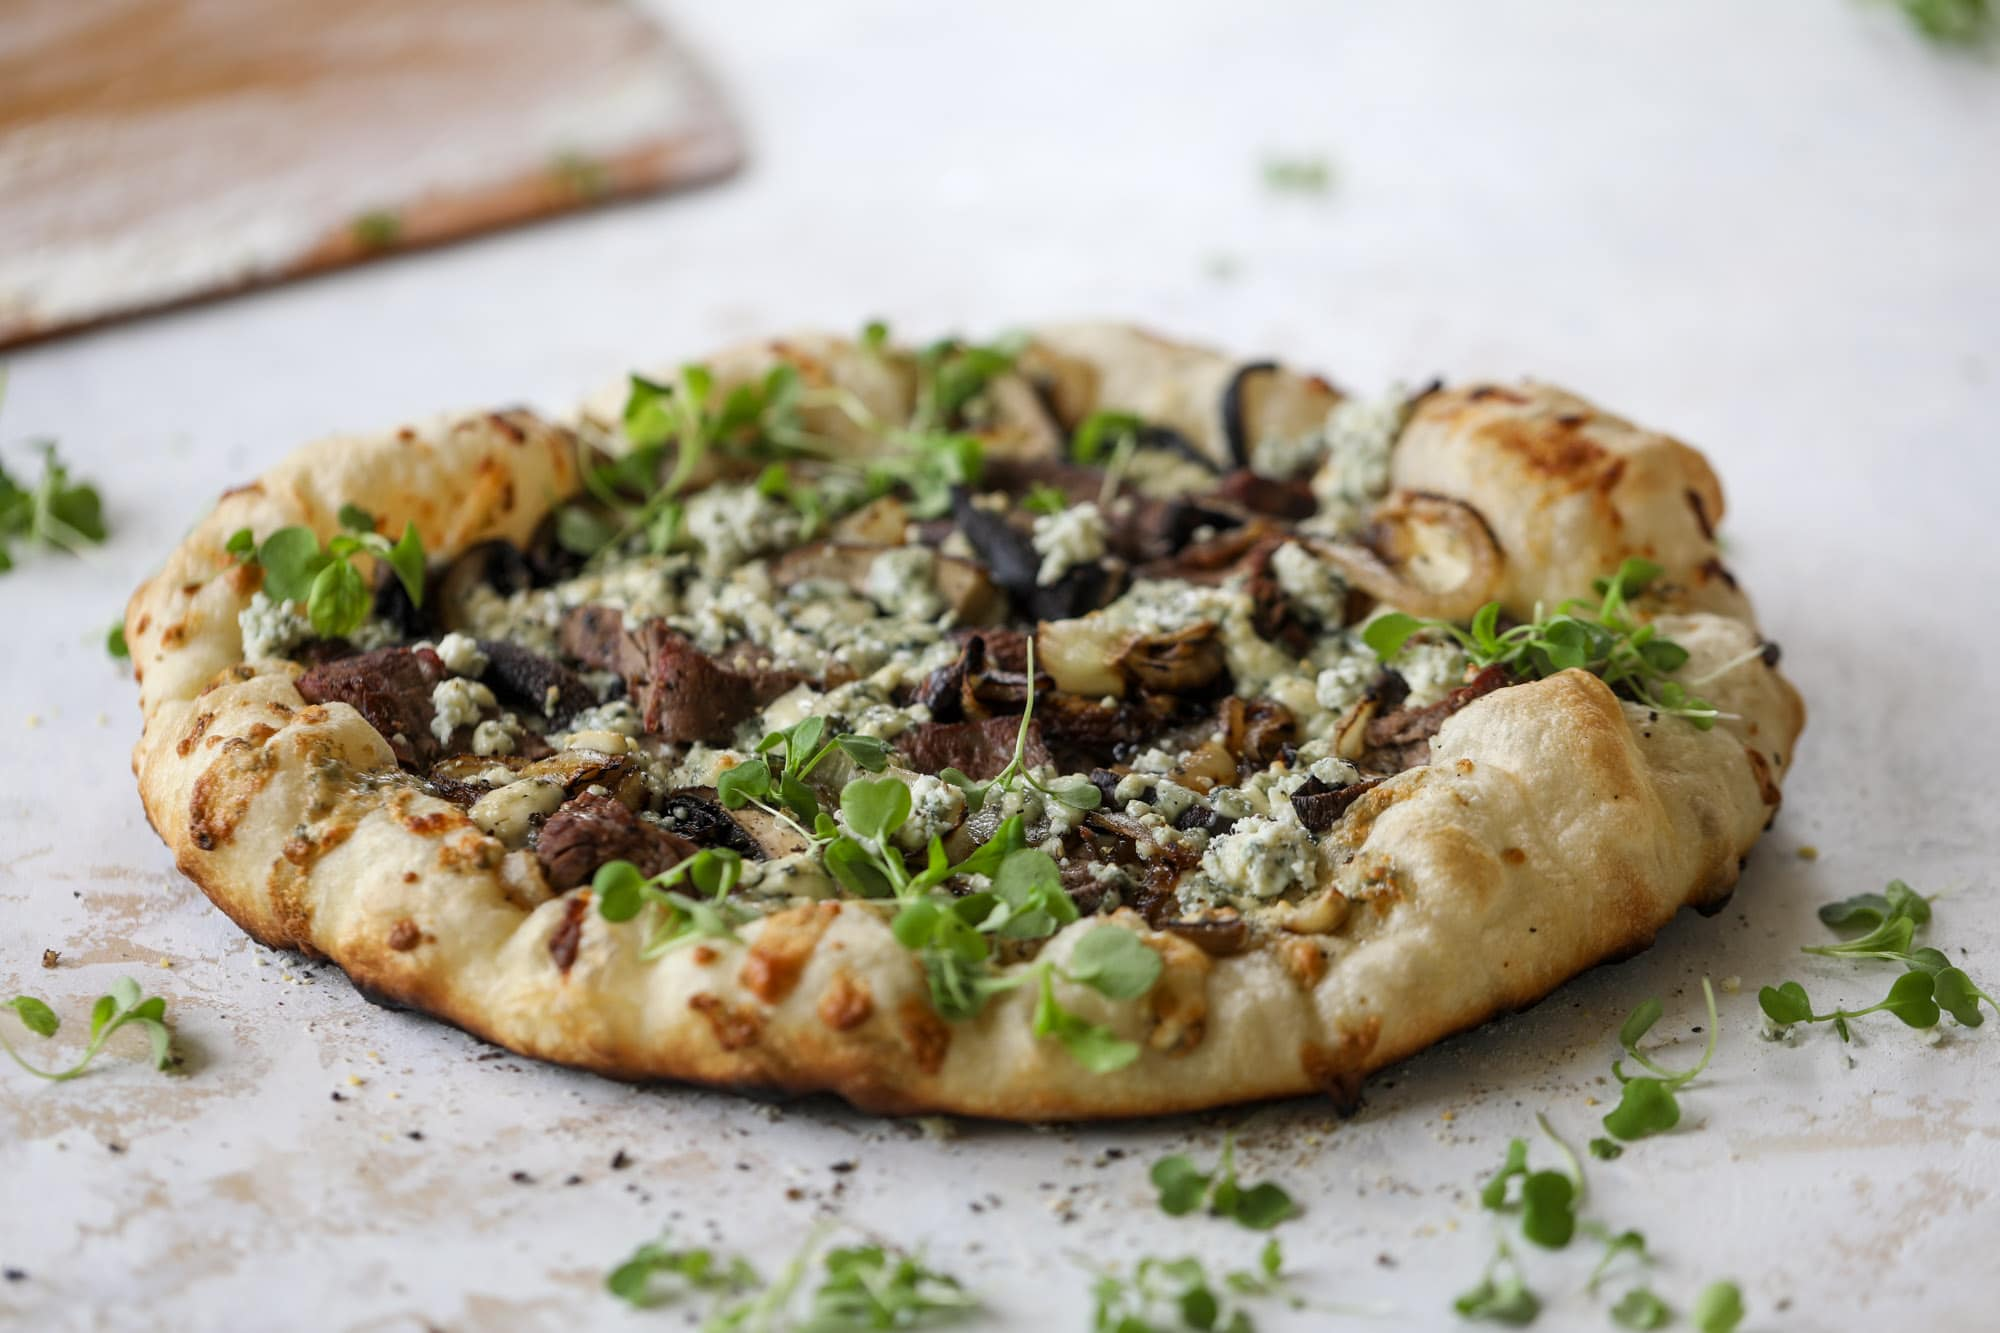 This grilled steakhouse pizza has all the amazing smoky flavors of your favorite steakhouse. Grilled onions, mushrooms and creamy gorgonzola finish it off.